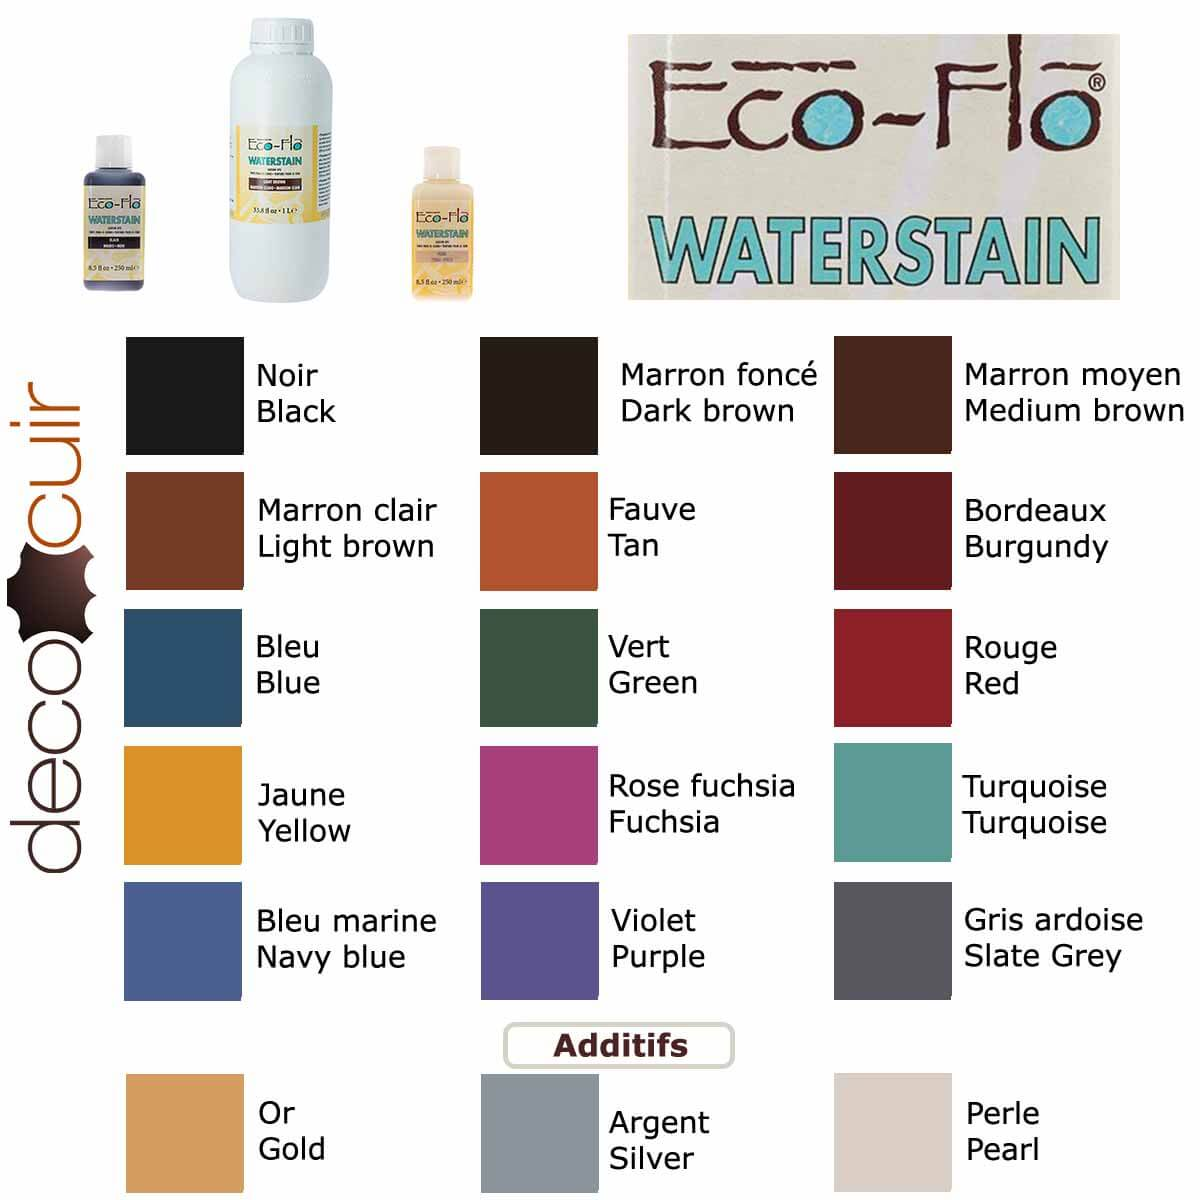 Teinture ECO-FLO WATERSTAIN - MARRON CLAIR / LIGHT BROWN - 1 litre